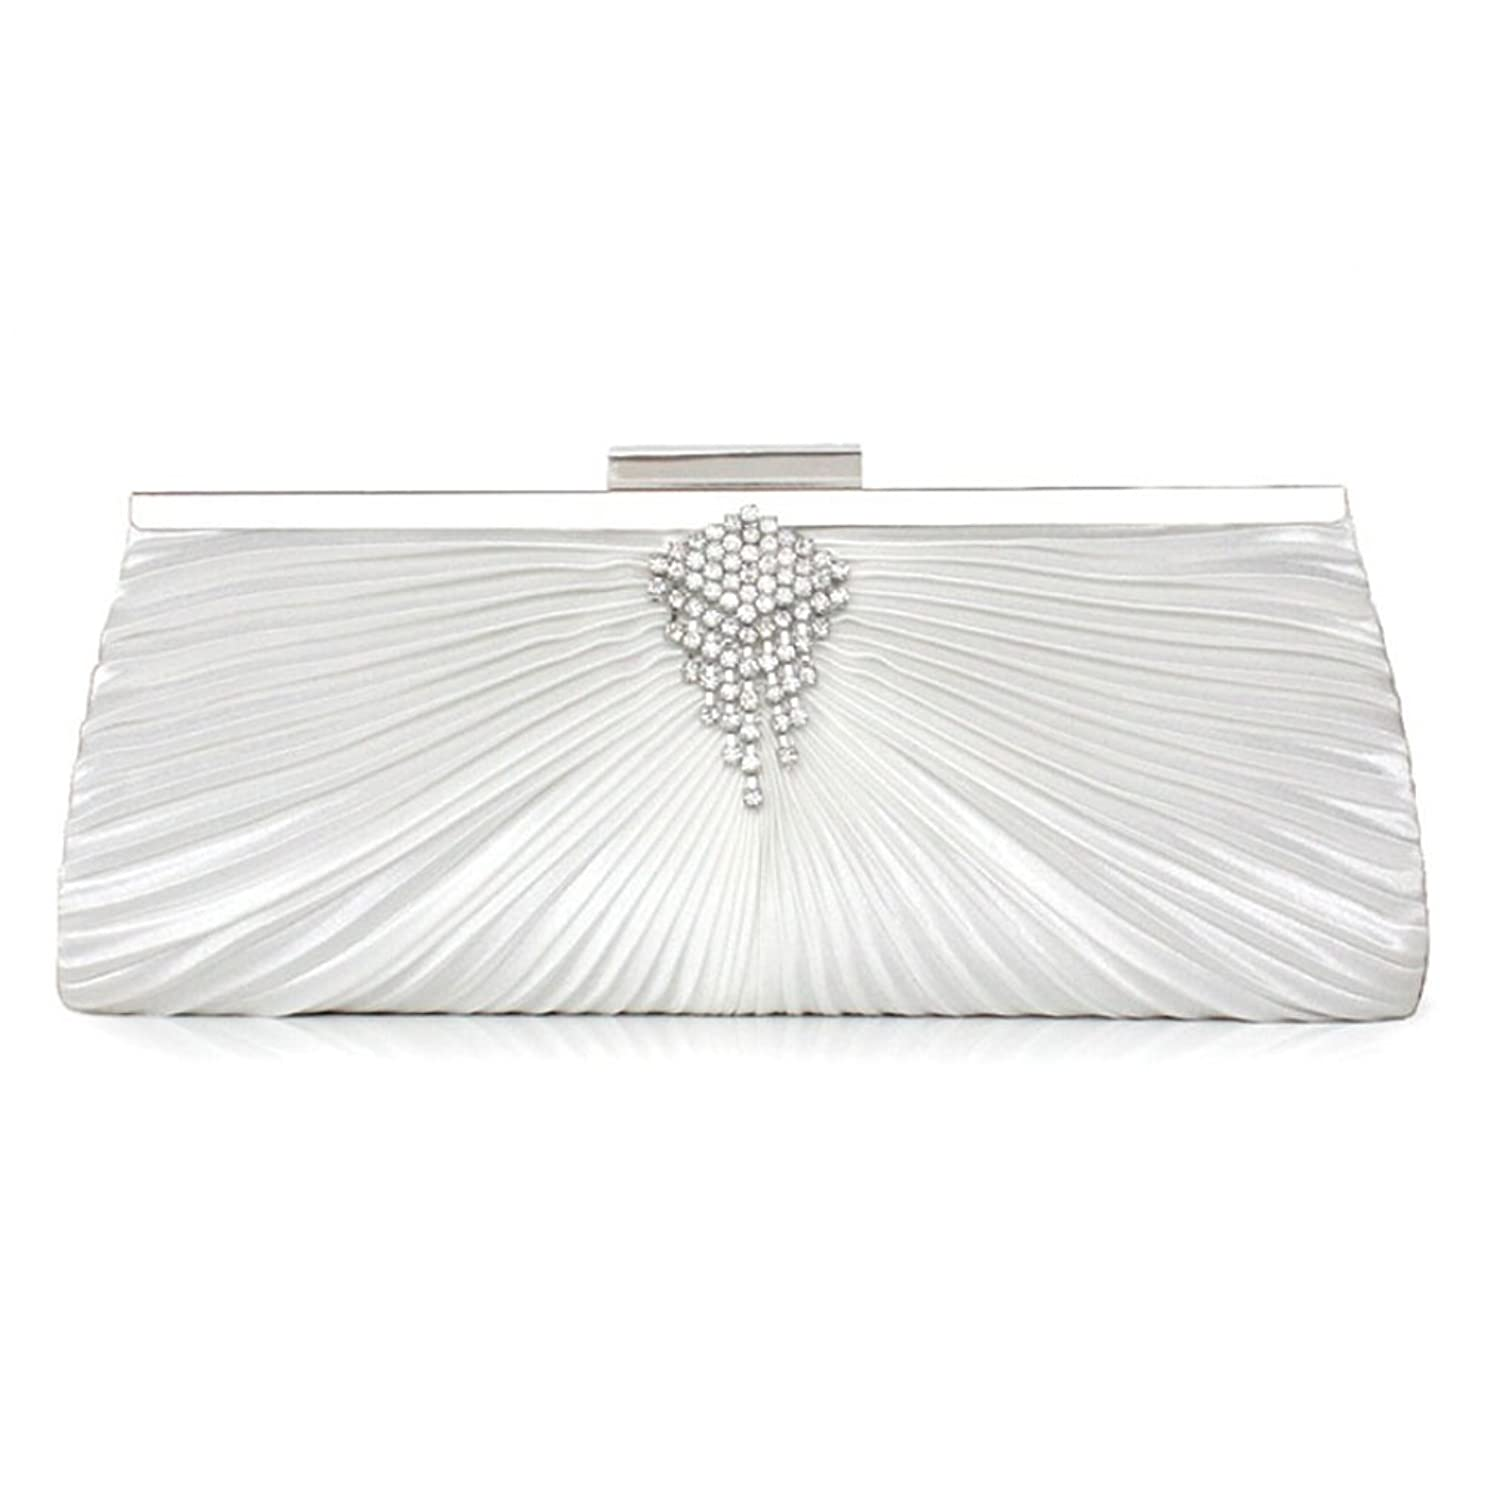 Abless Women Elegant Swirling Clinched White Satin Fabric Fashion Party Clutch Purses